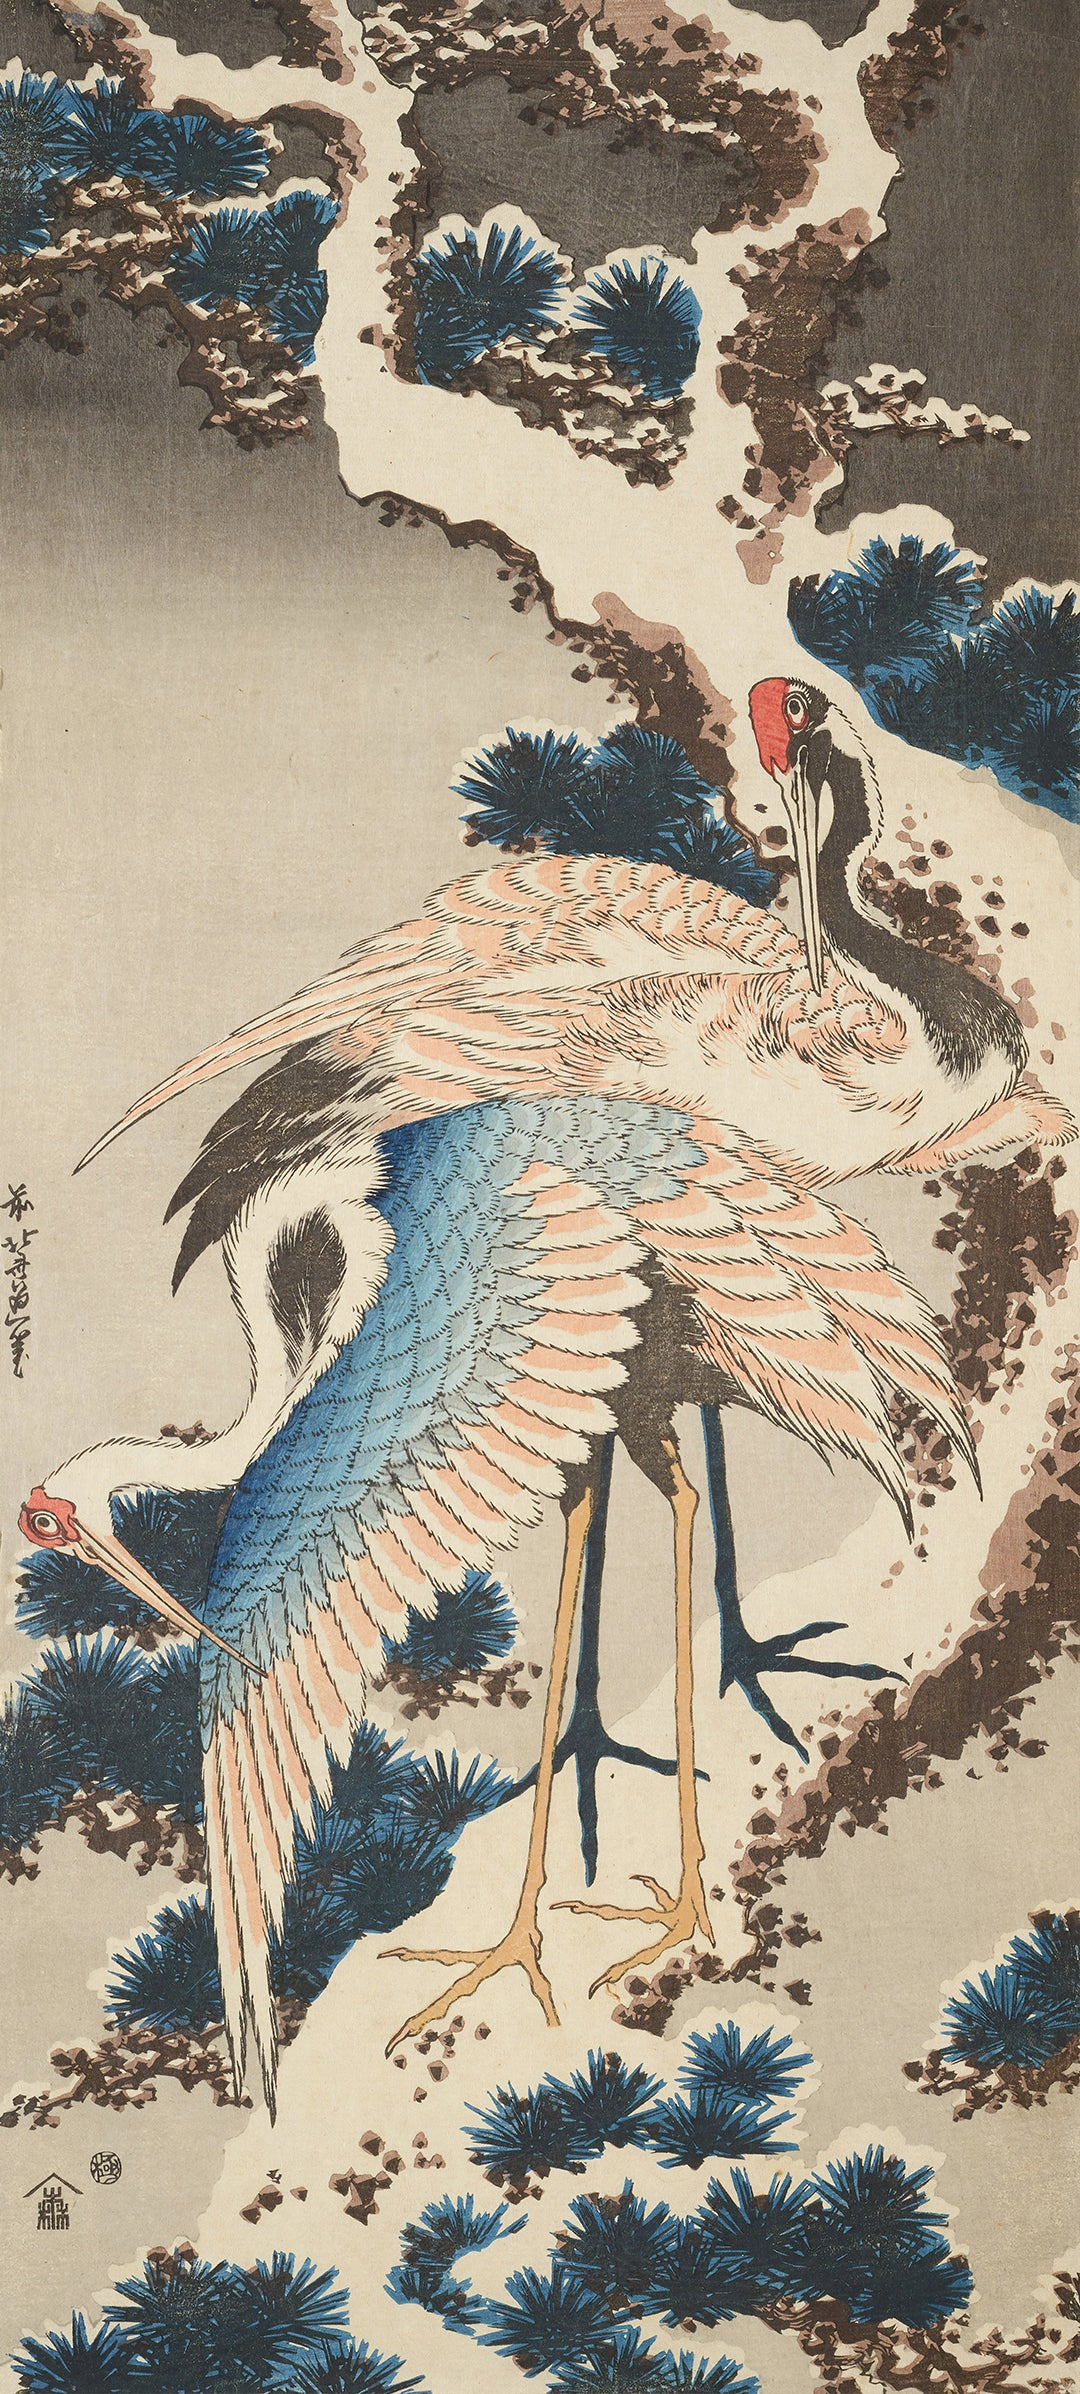 Cranes on a Snow Covered Pine Tree (1834) by Hokusai